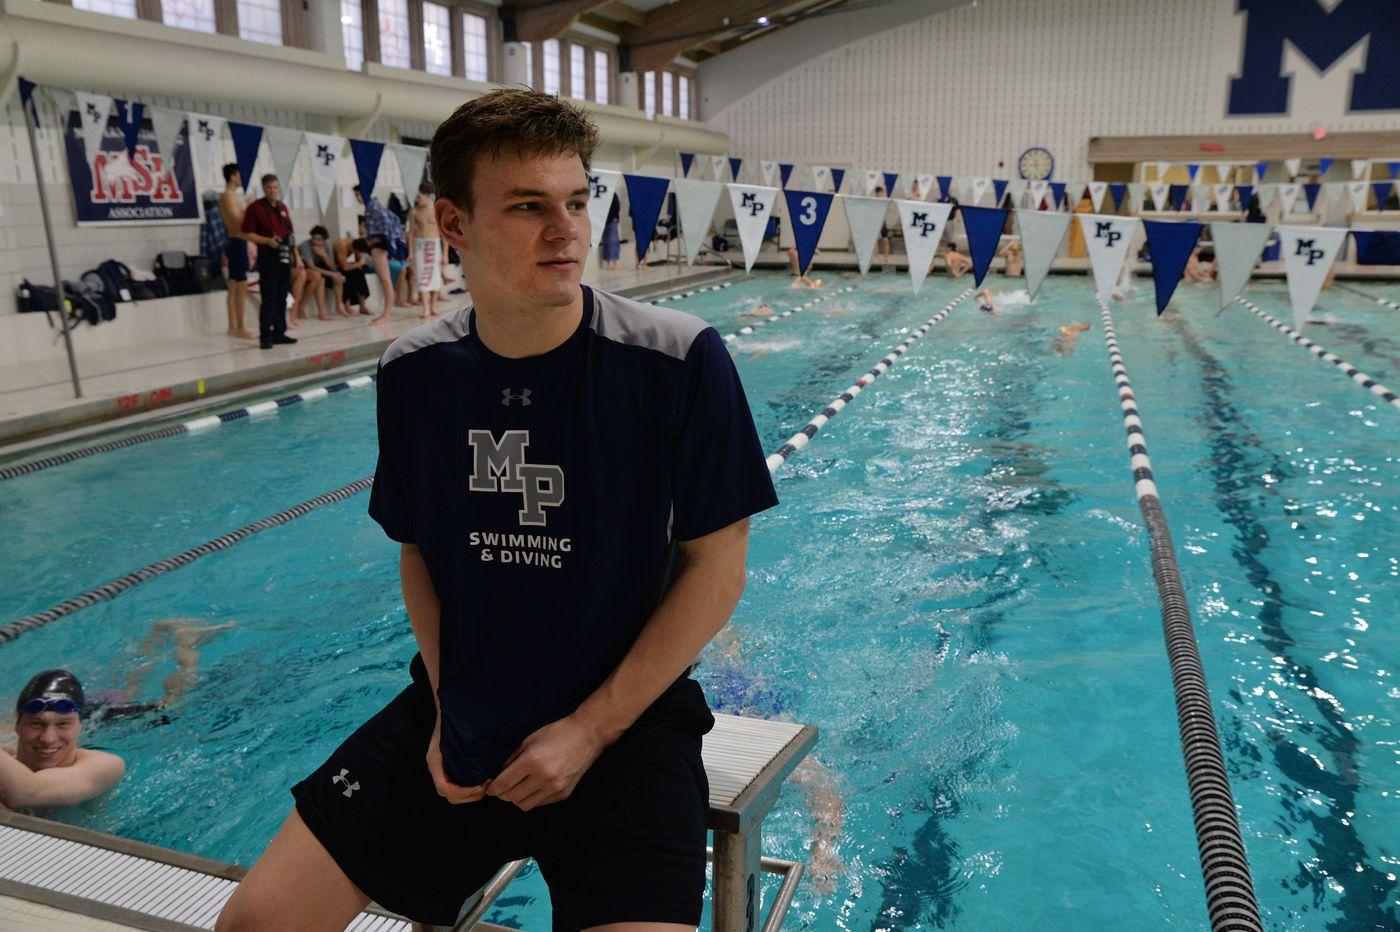 Malvern Prep swimmer Matt Magness, headed to Ohio State, is not done dominating in the pool